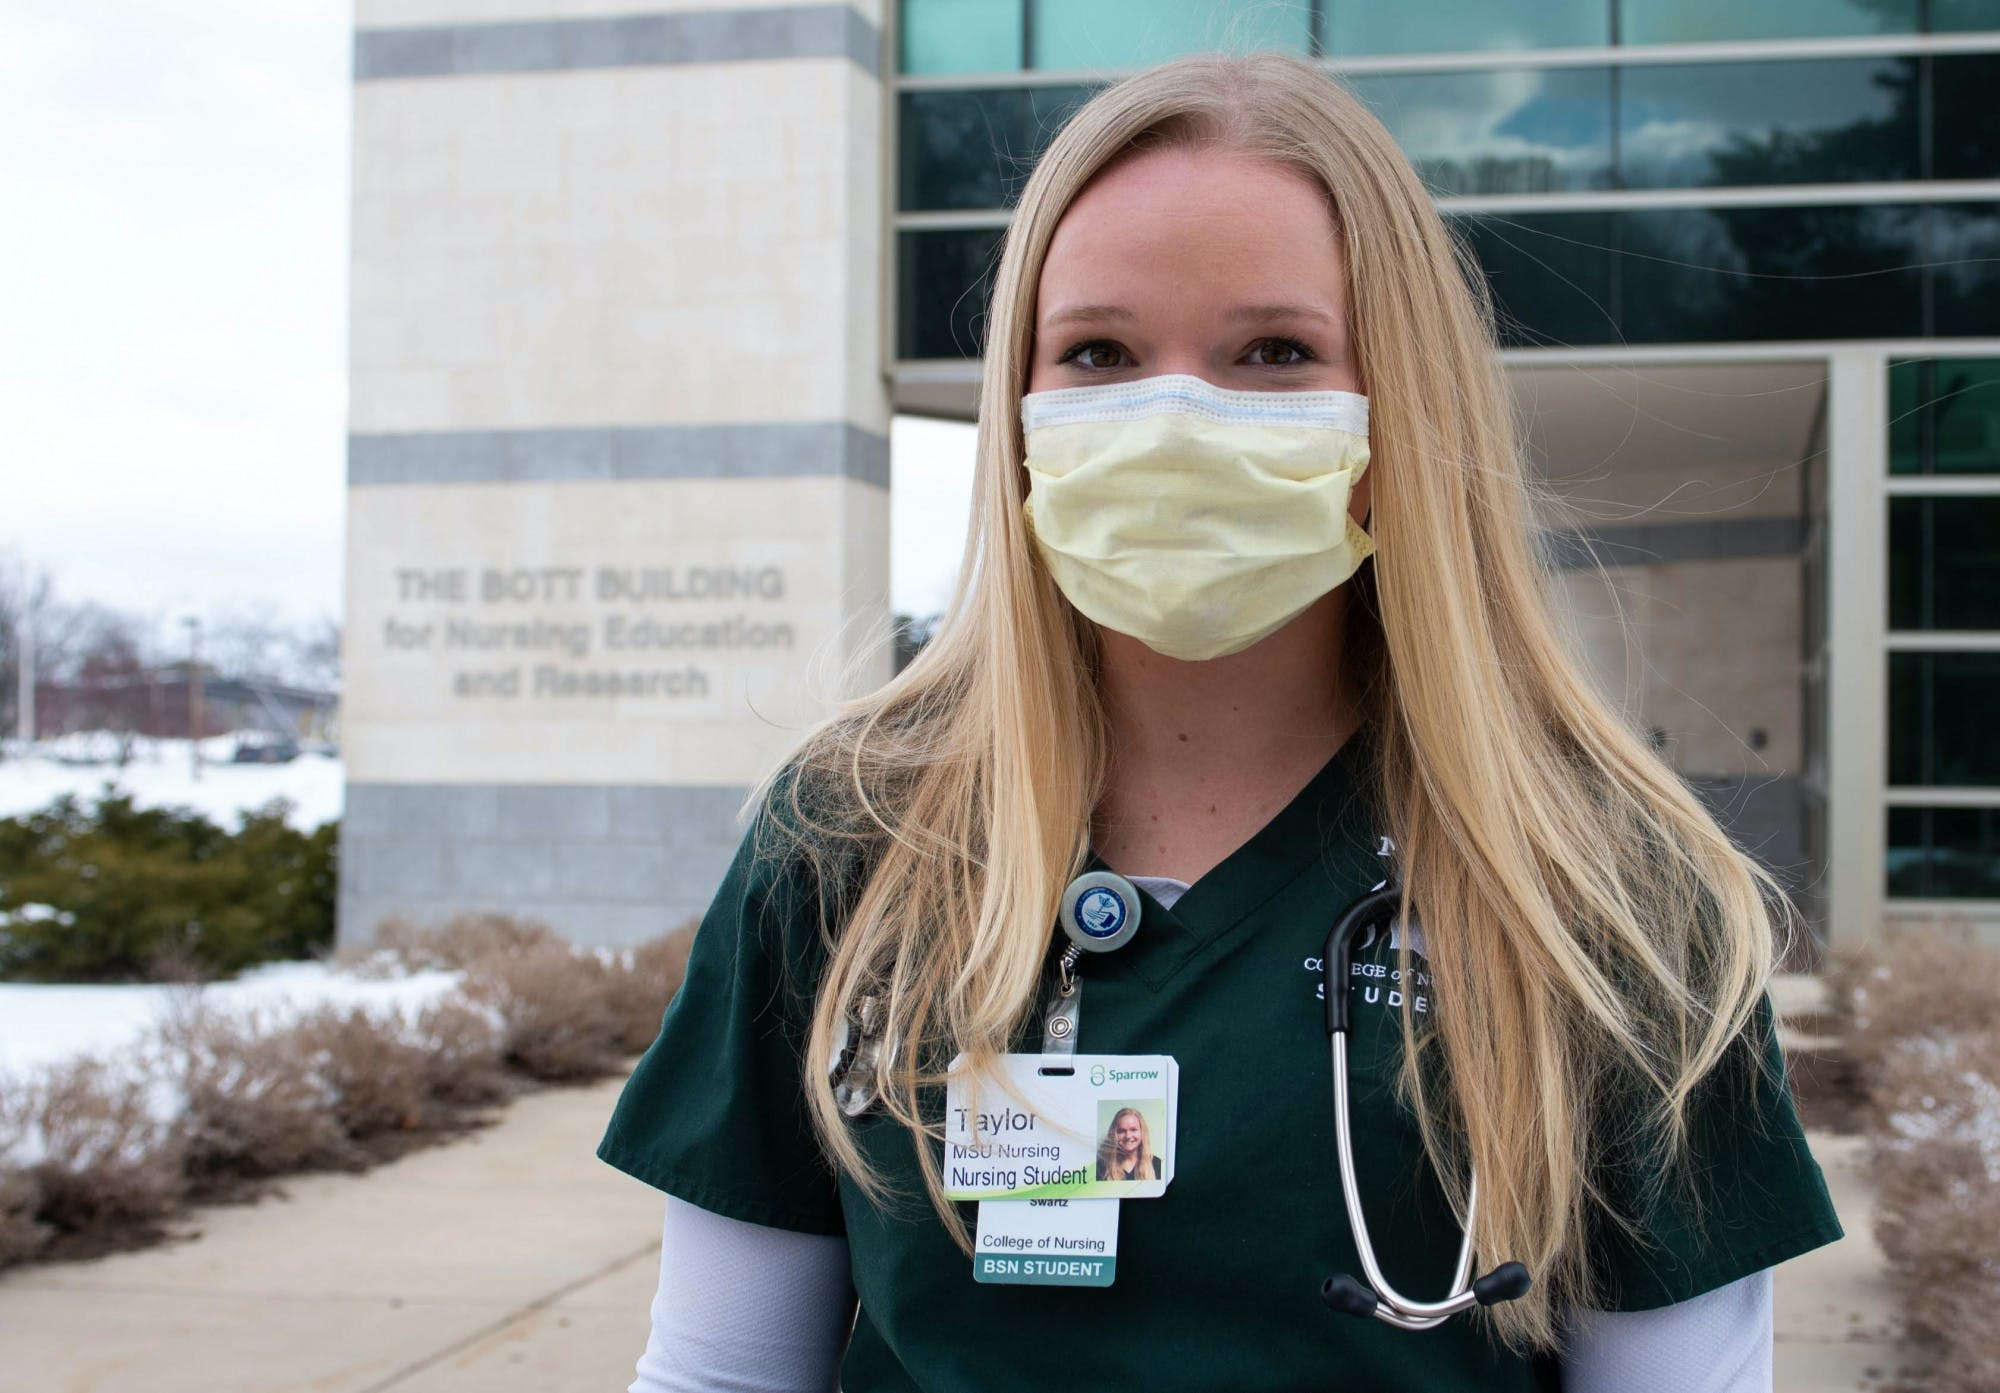 A young woman wearing medical scrubs, a face mask, a name badge and a stethoscope poses for a portrait in front of a building with a sign that reads 'The Bott Building for Nursing Education and Research.'